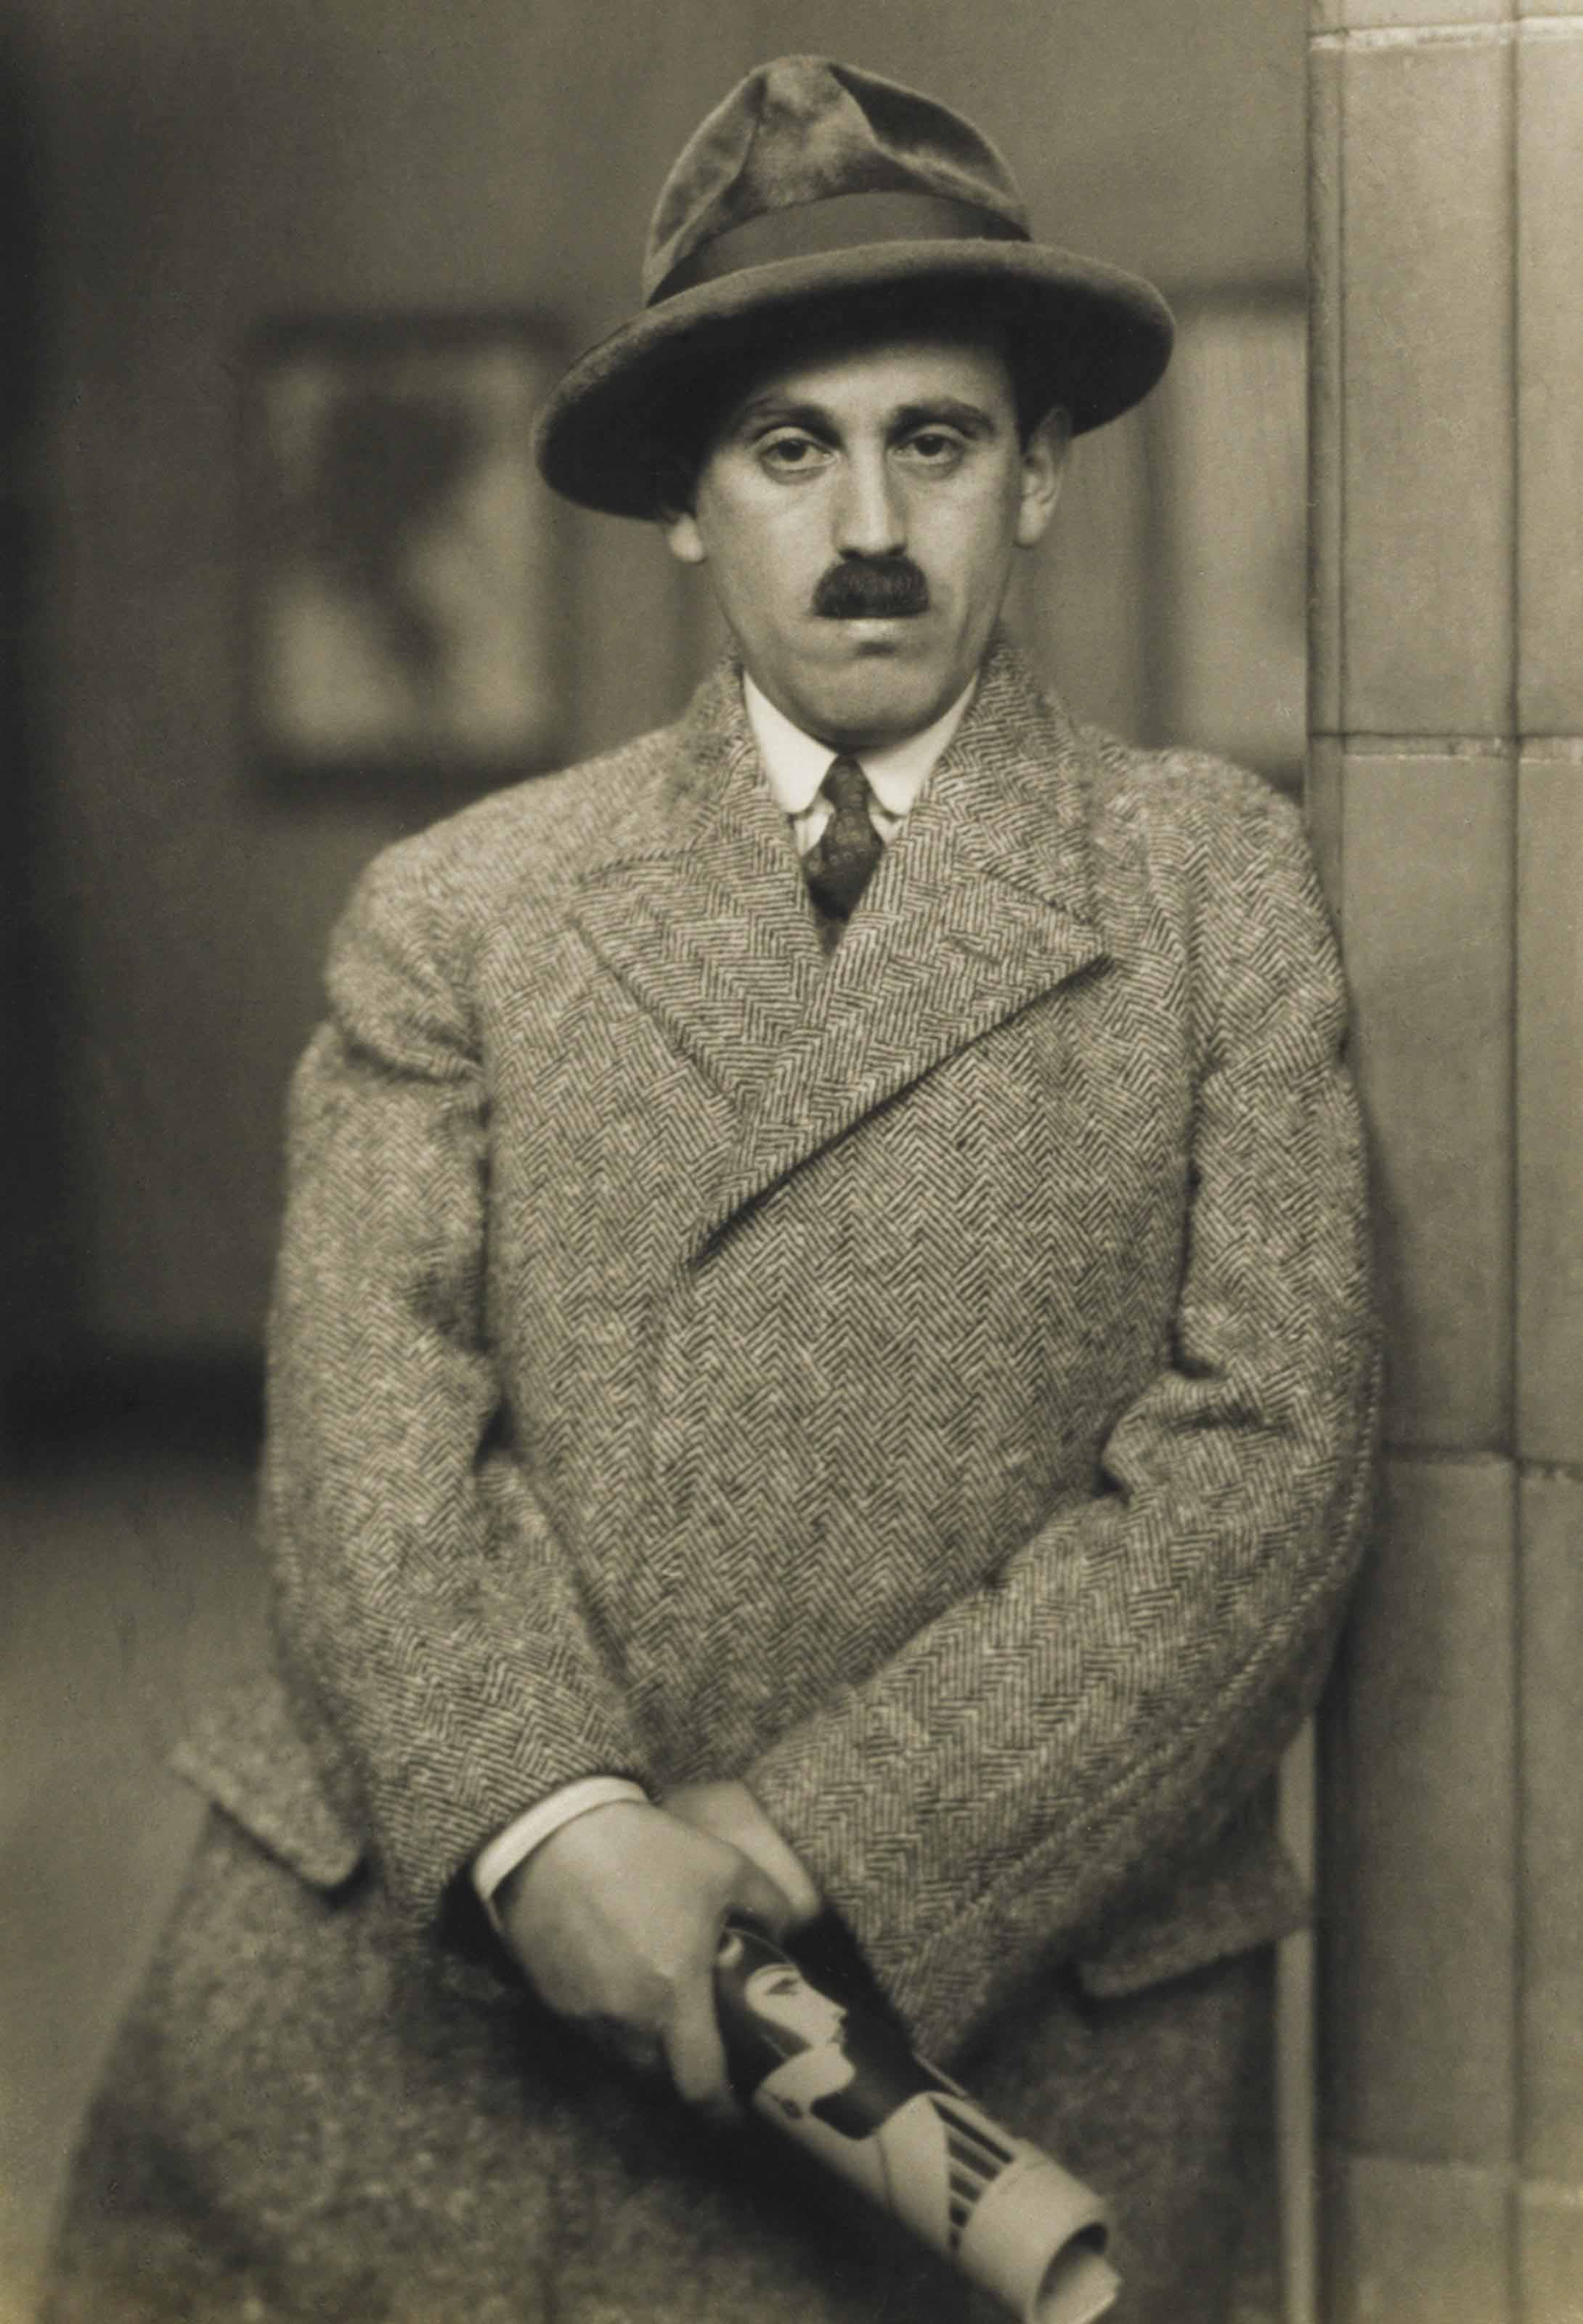 Art Dealer, Cologne, 1927